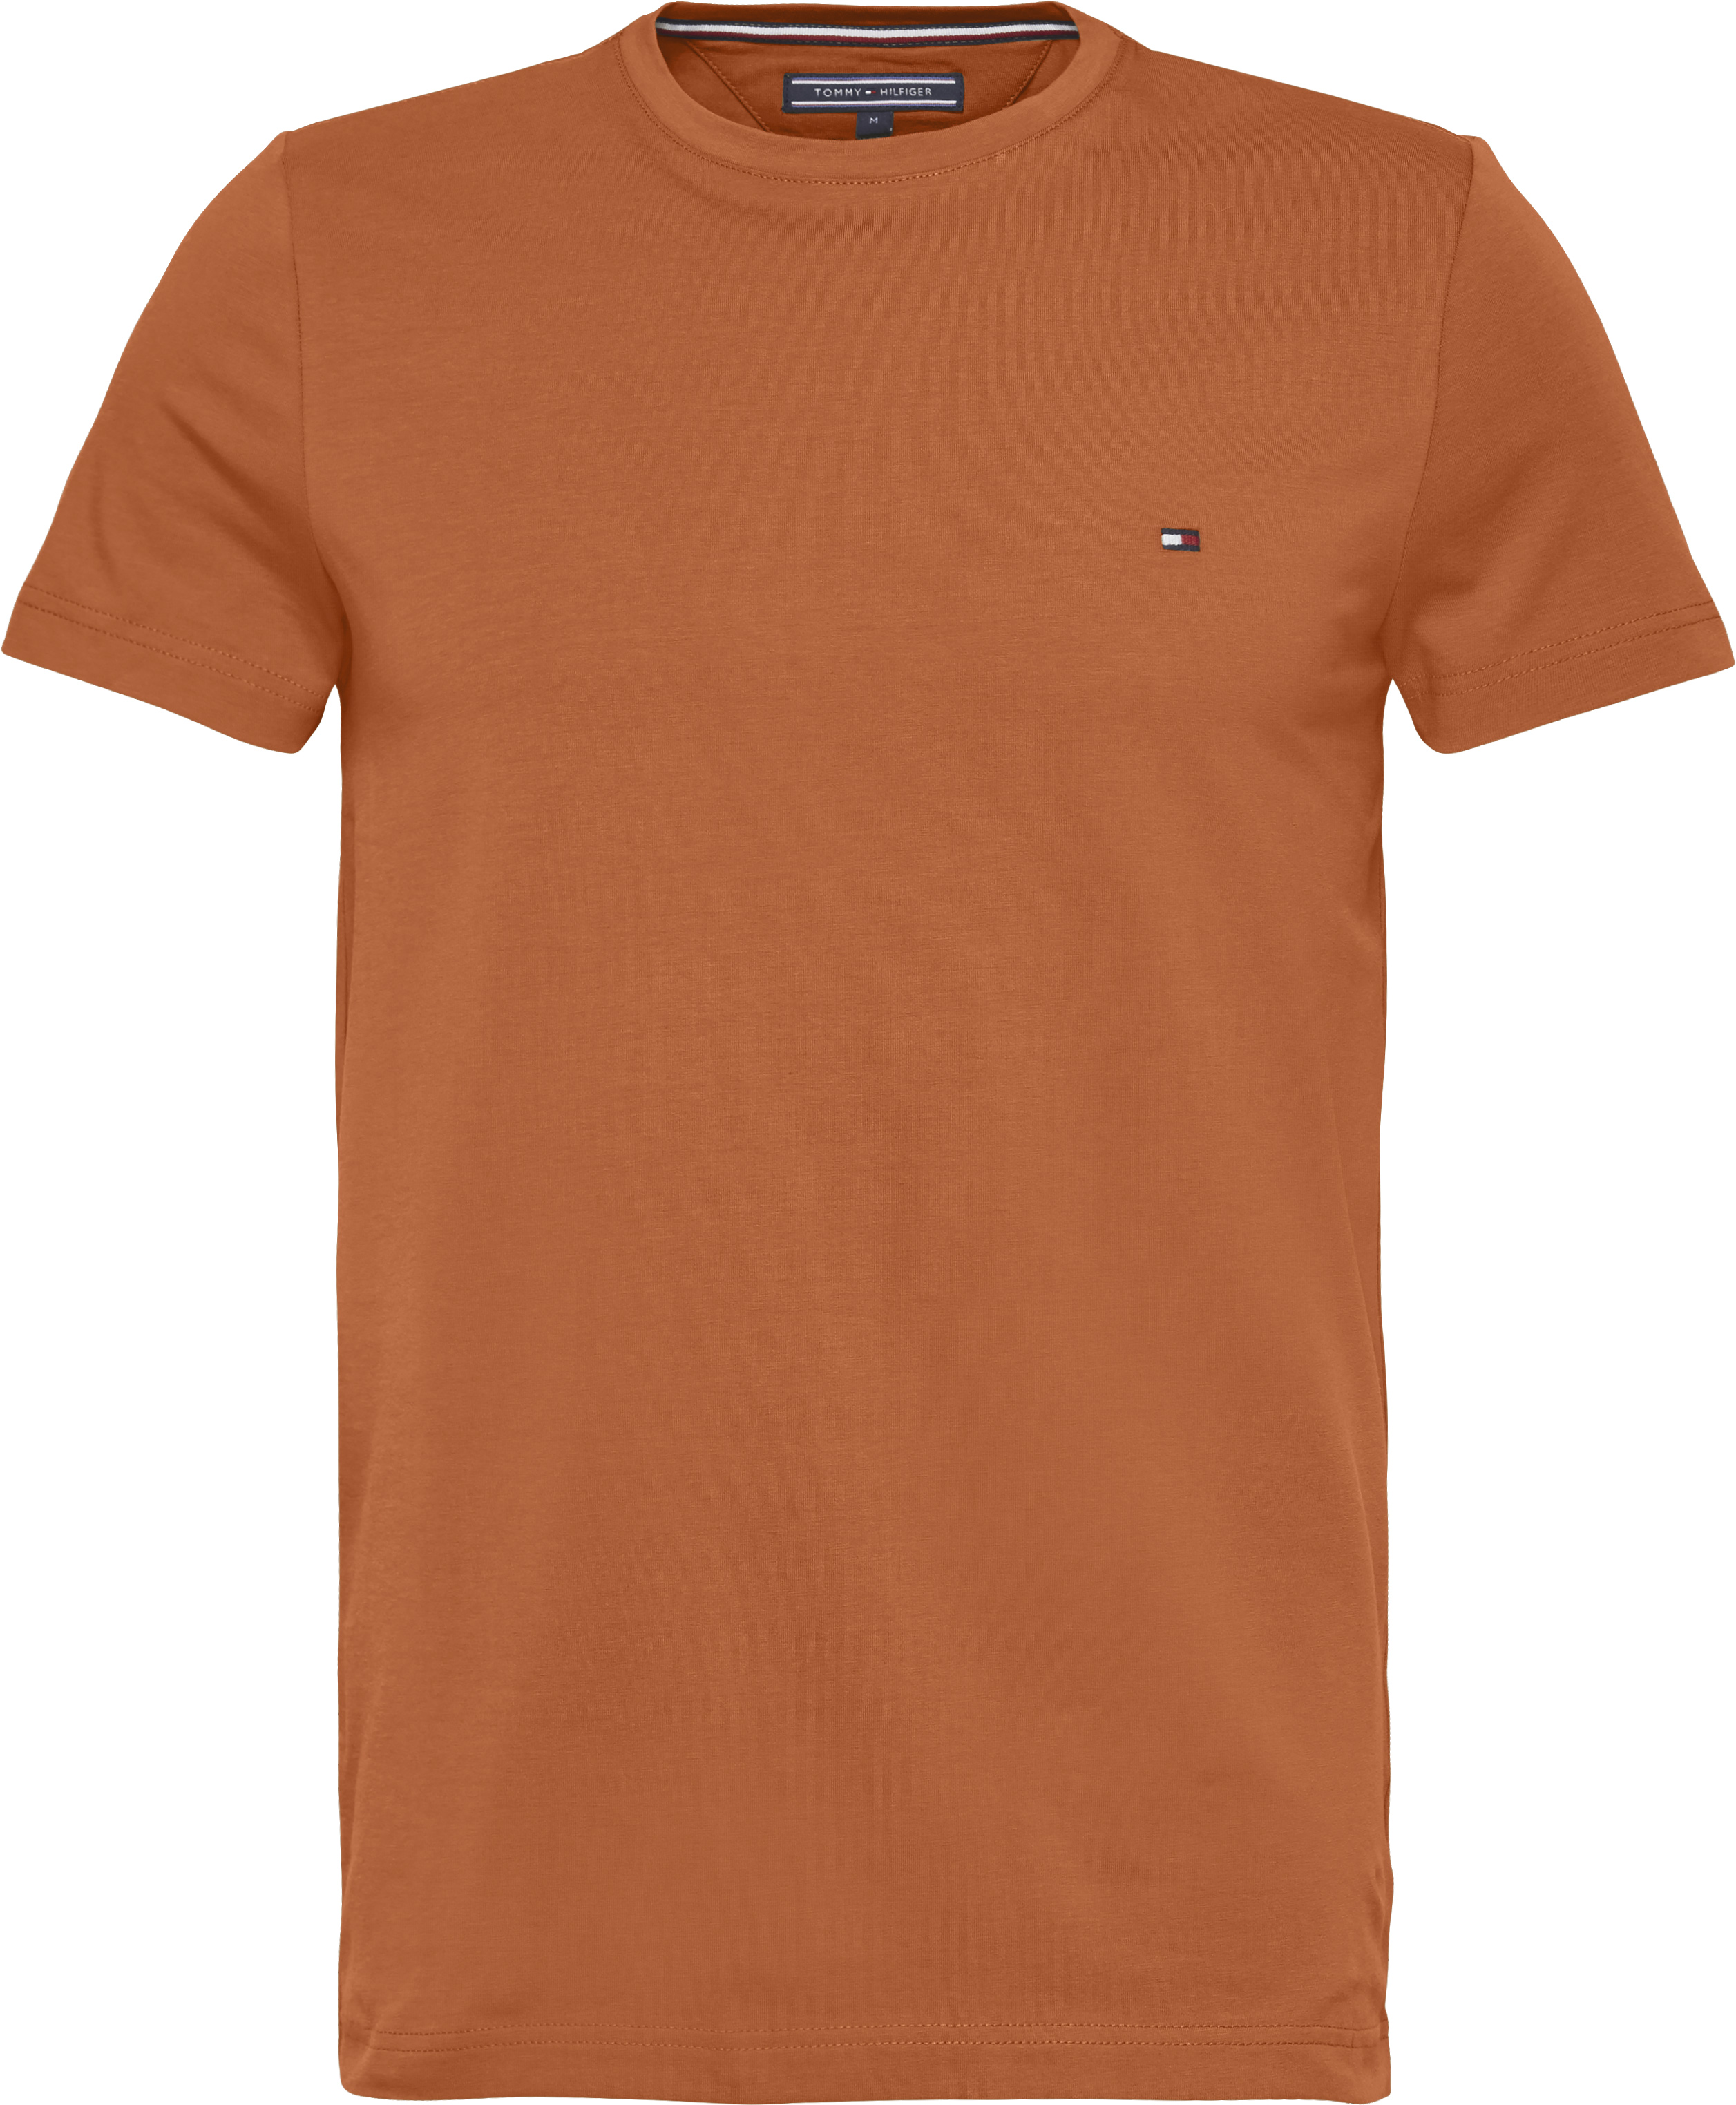 camiseta Tommy Hilfiger Hombre SS18_MW0MW04162211 Strech Slim Fit Tee - 39.90€